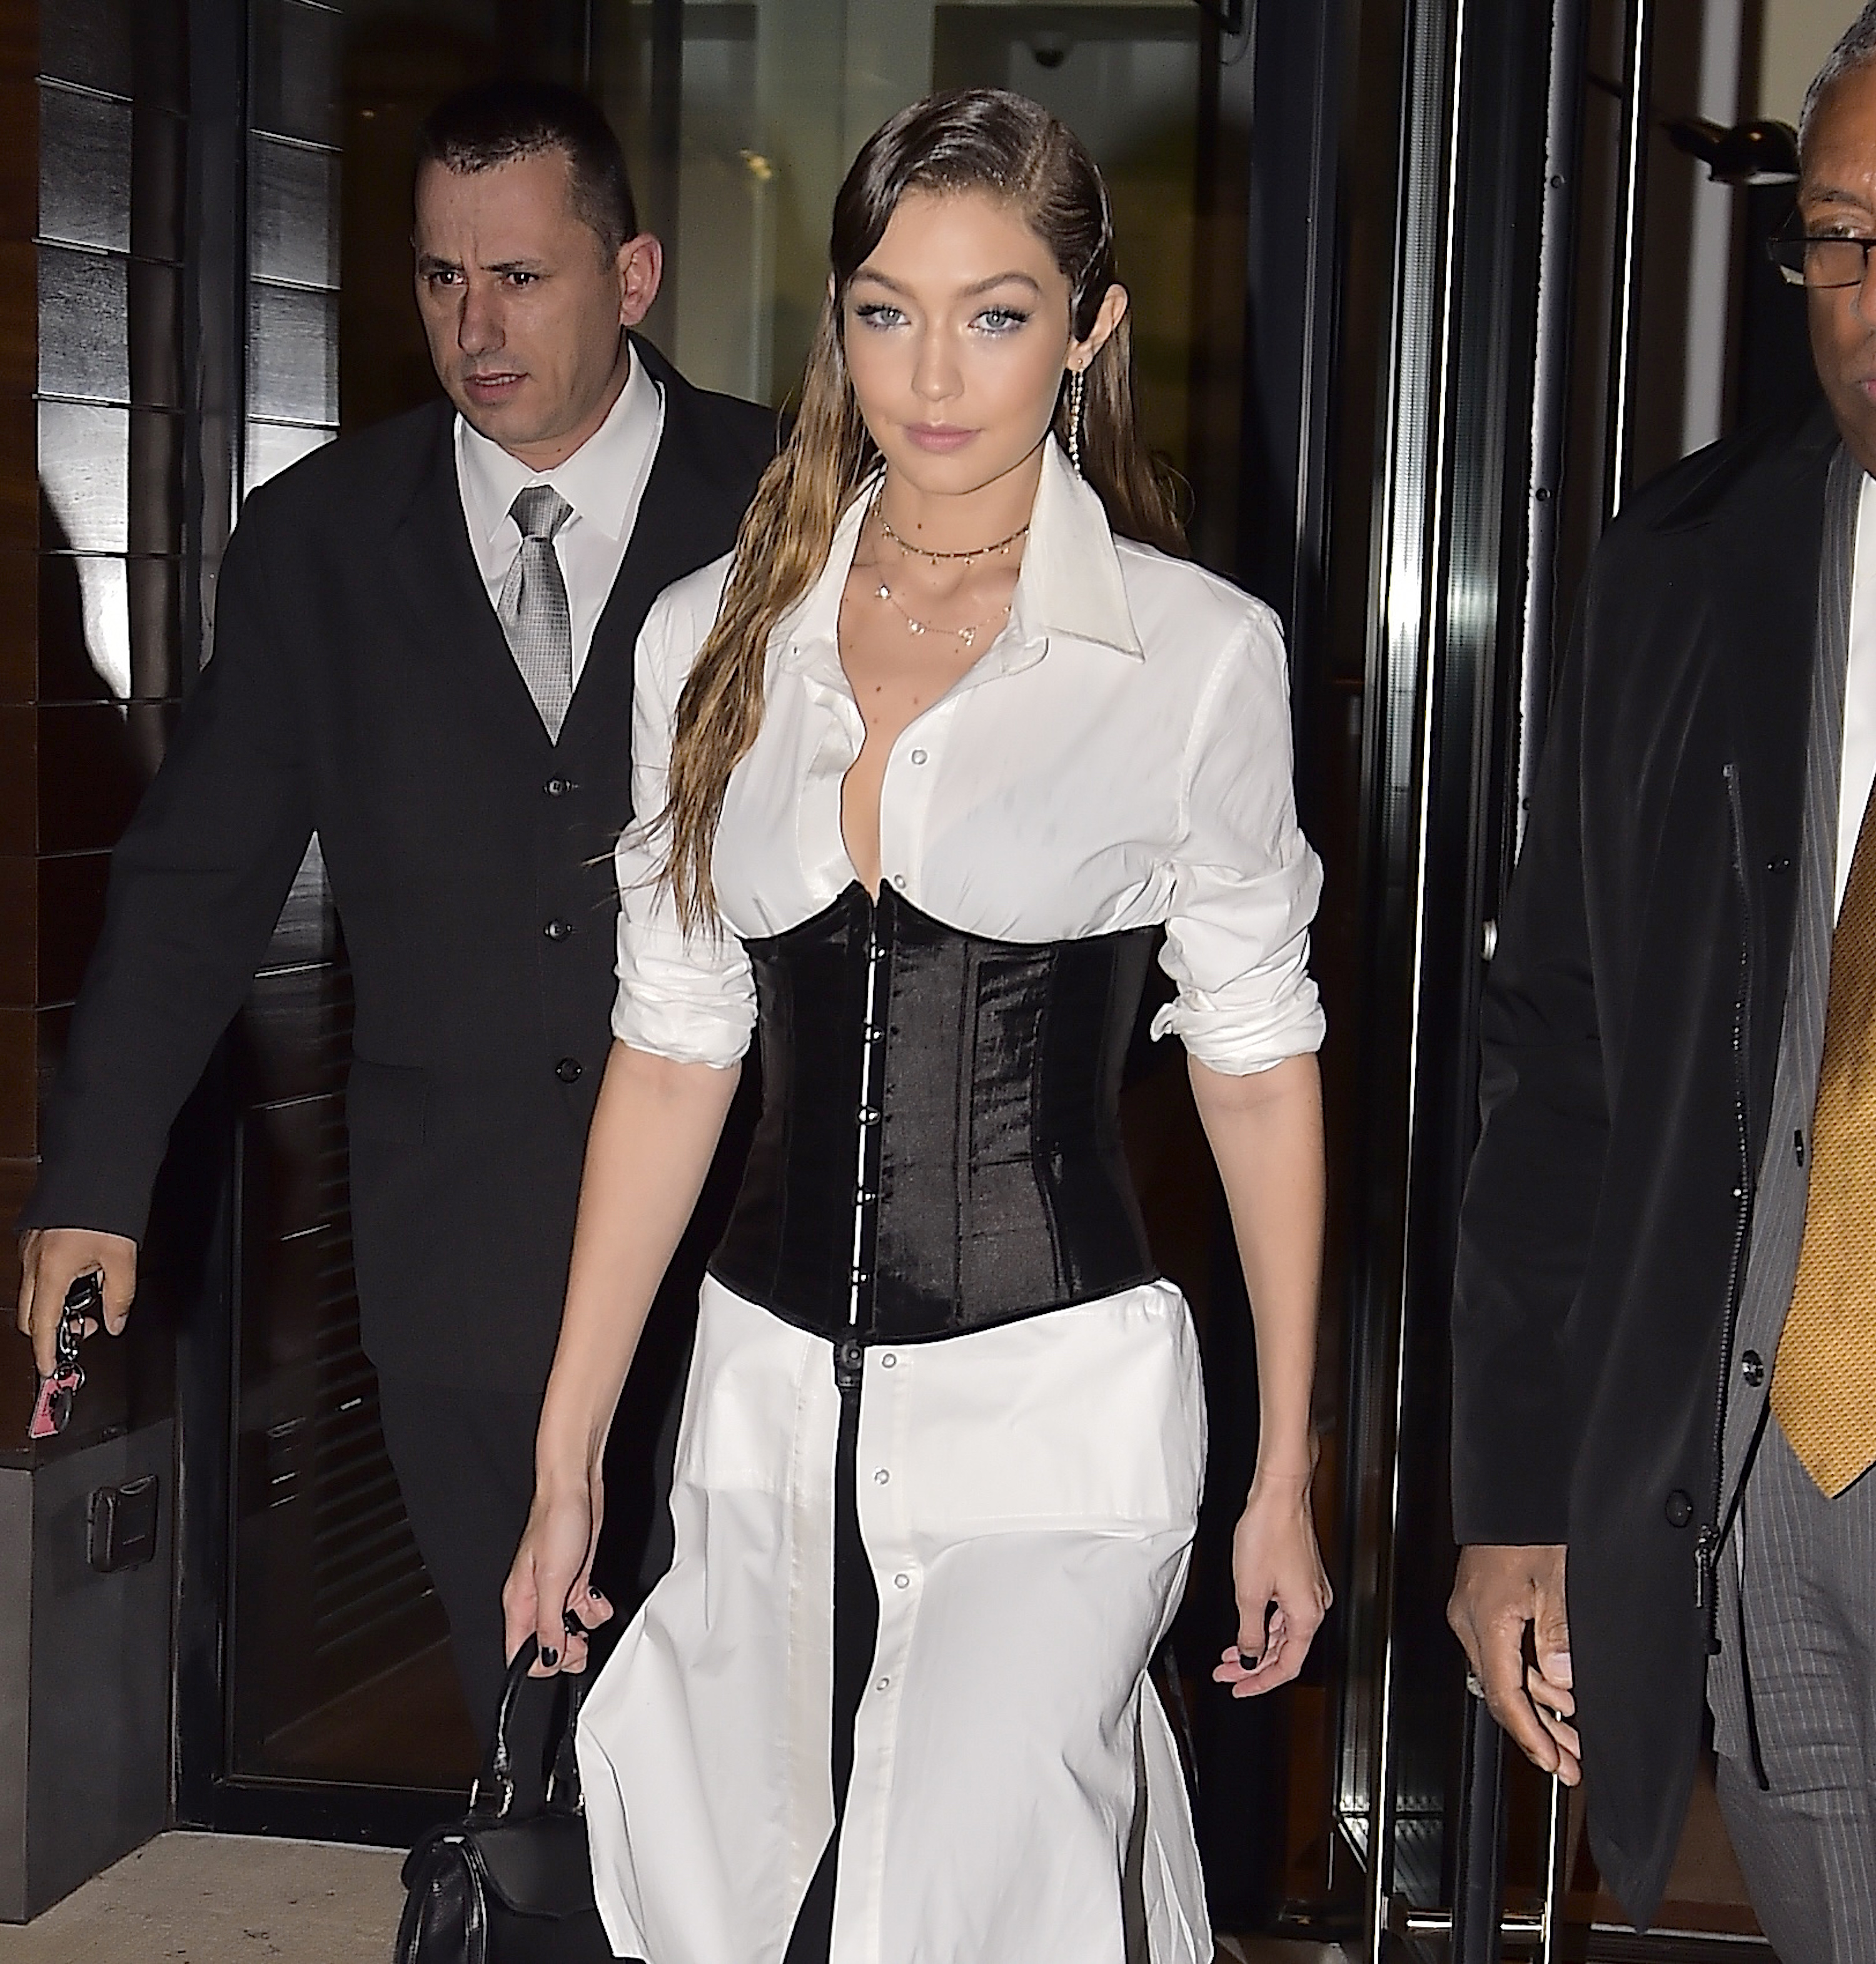 """<p>Gigi Hadid has followed Kim Kardashian's lead and gotten wrapped up in the corset trend that took over the autumn/winter runways in February.</p> <p>At the New York launch of her boot collaboration with Stuart Weitzman the 21-year-old showed how to work the waist-accentuating trend without looking like a Victorian throwback.</p> <p>While a Gigi boot will set you back $745 corsets come in all prices. Dip your toe into the trend with a corset-style belt worn over shirting, like Gigi, or look for blazers and shirts with corset lacing.</p> <p>The trick is not to think of the corset as an outdated lingerie staple but rather as a fetish-forward belt to enliven dull daywear.</p> <p>Now make like Gigi and breathe in.<span class=""""Apple-tab-span"""" style=""""white-space: pre;""""></span></p>"""